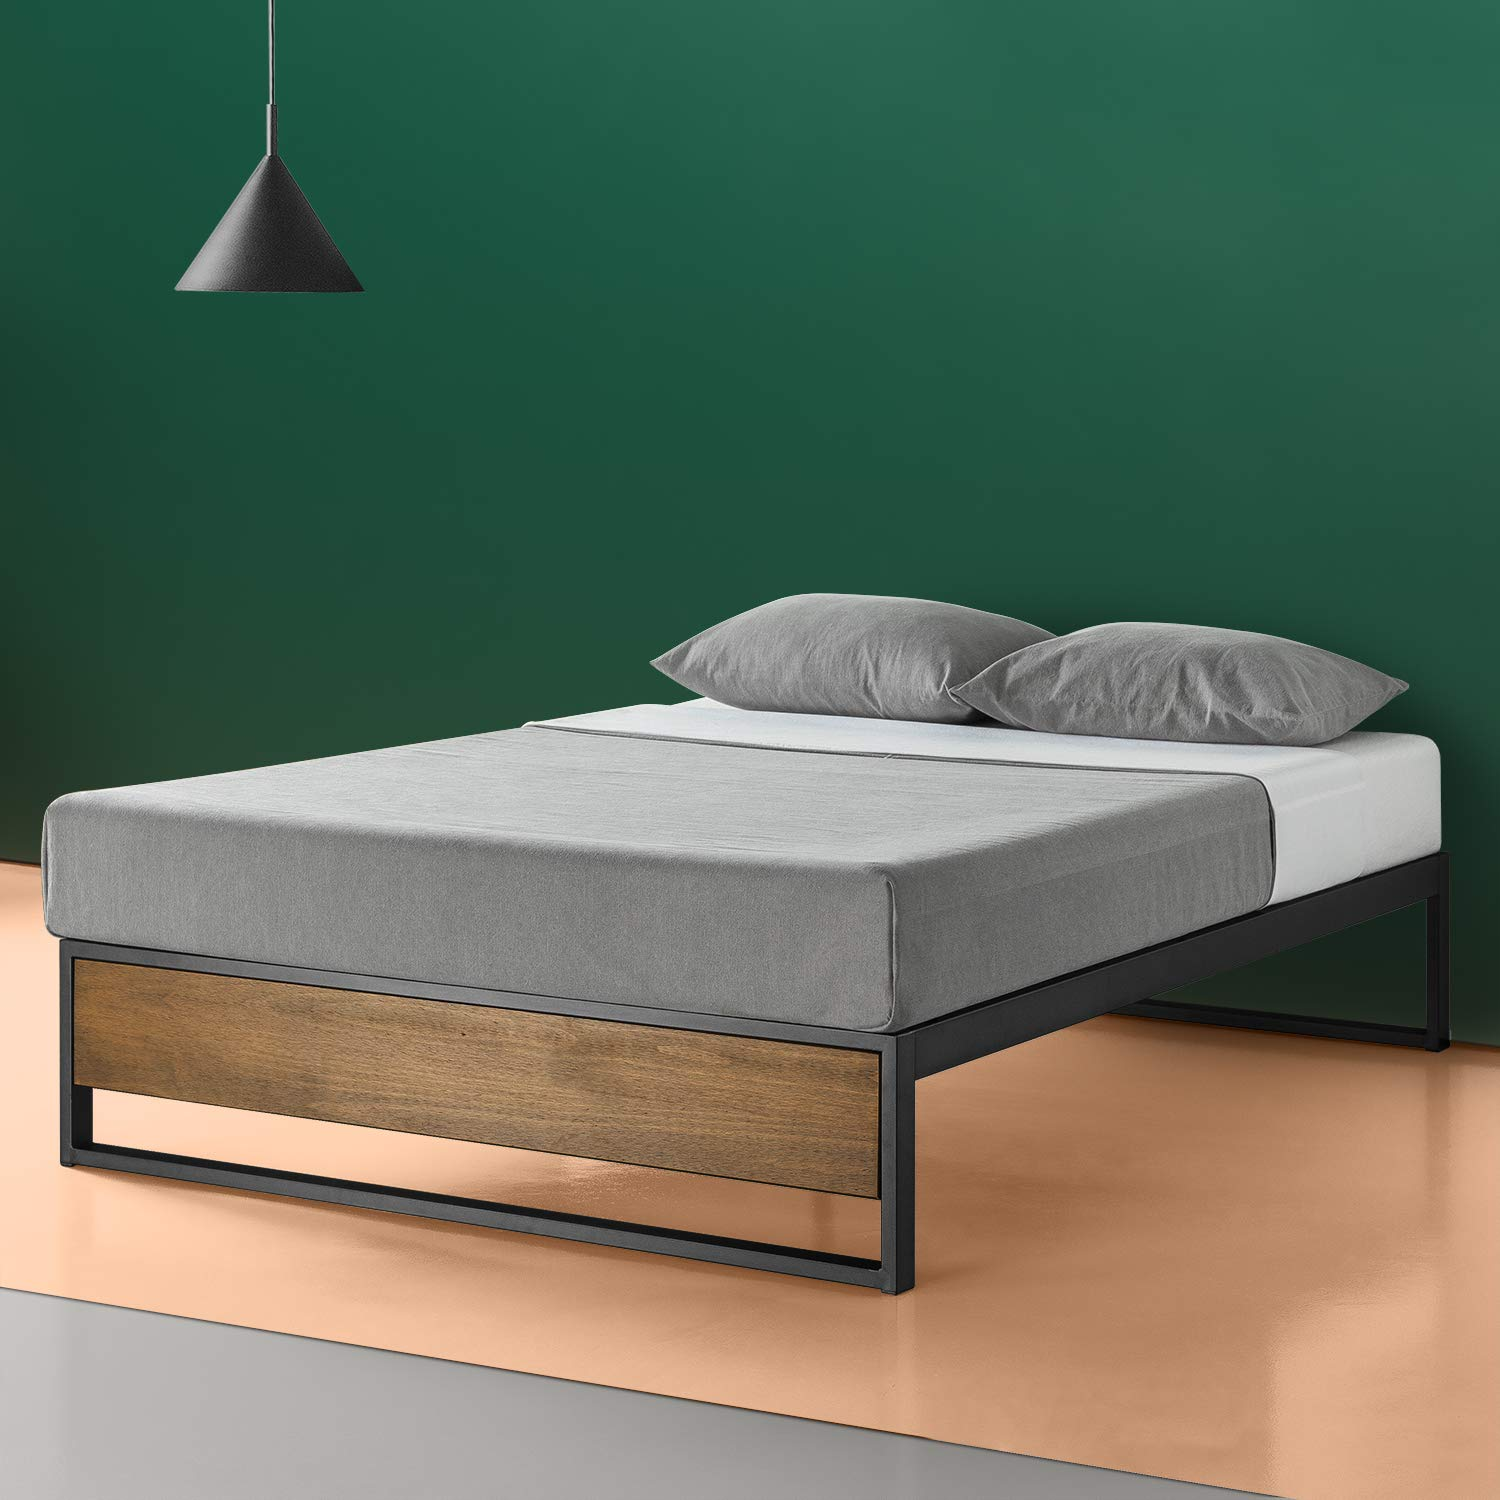 Zinus Suzanne 14 Inch Platform Bed without Headboard, Twin